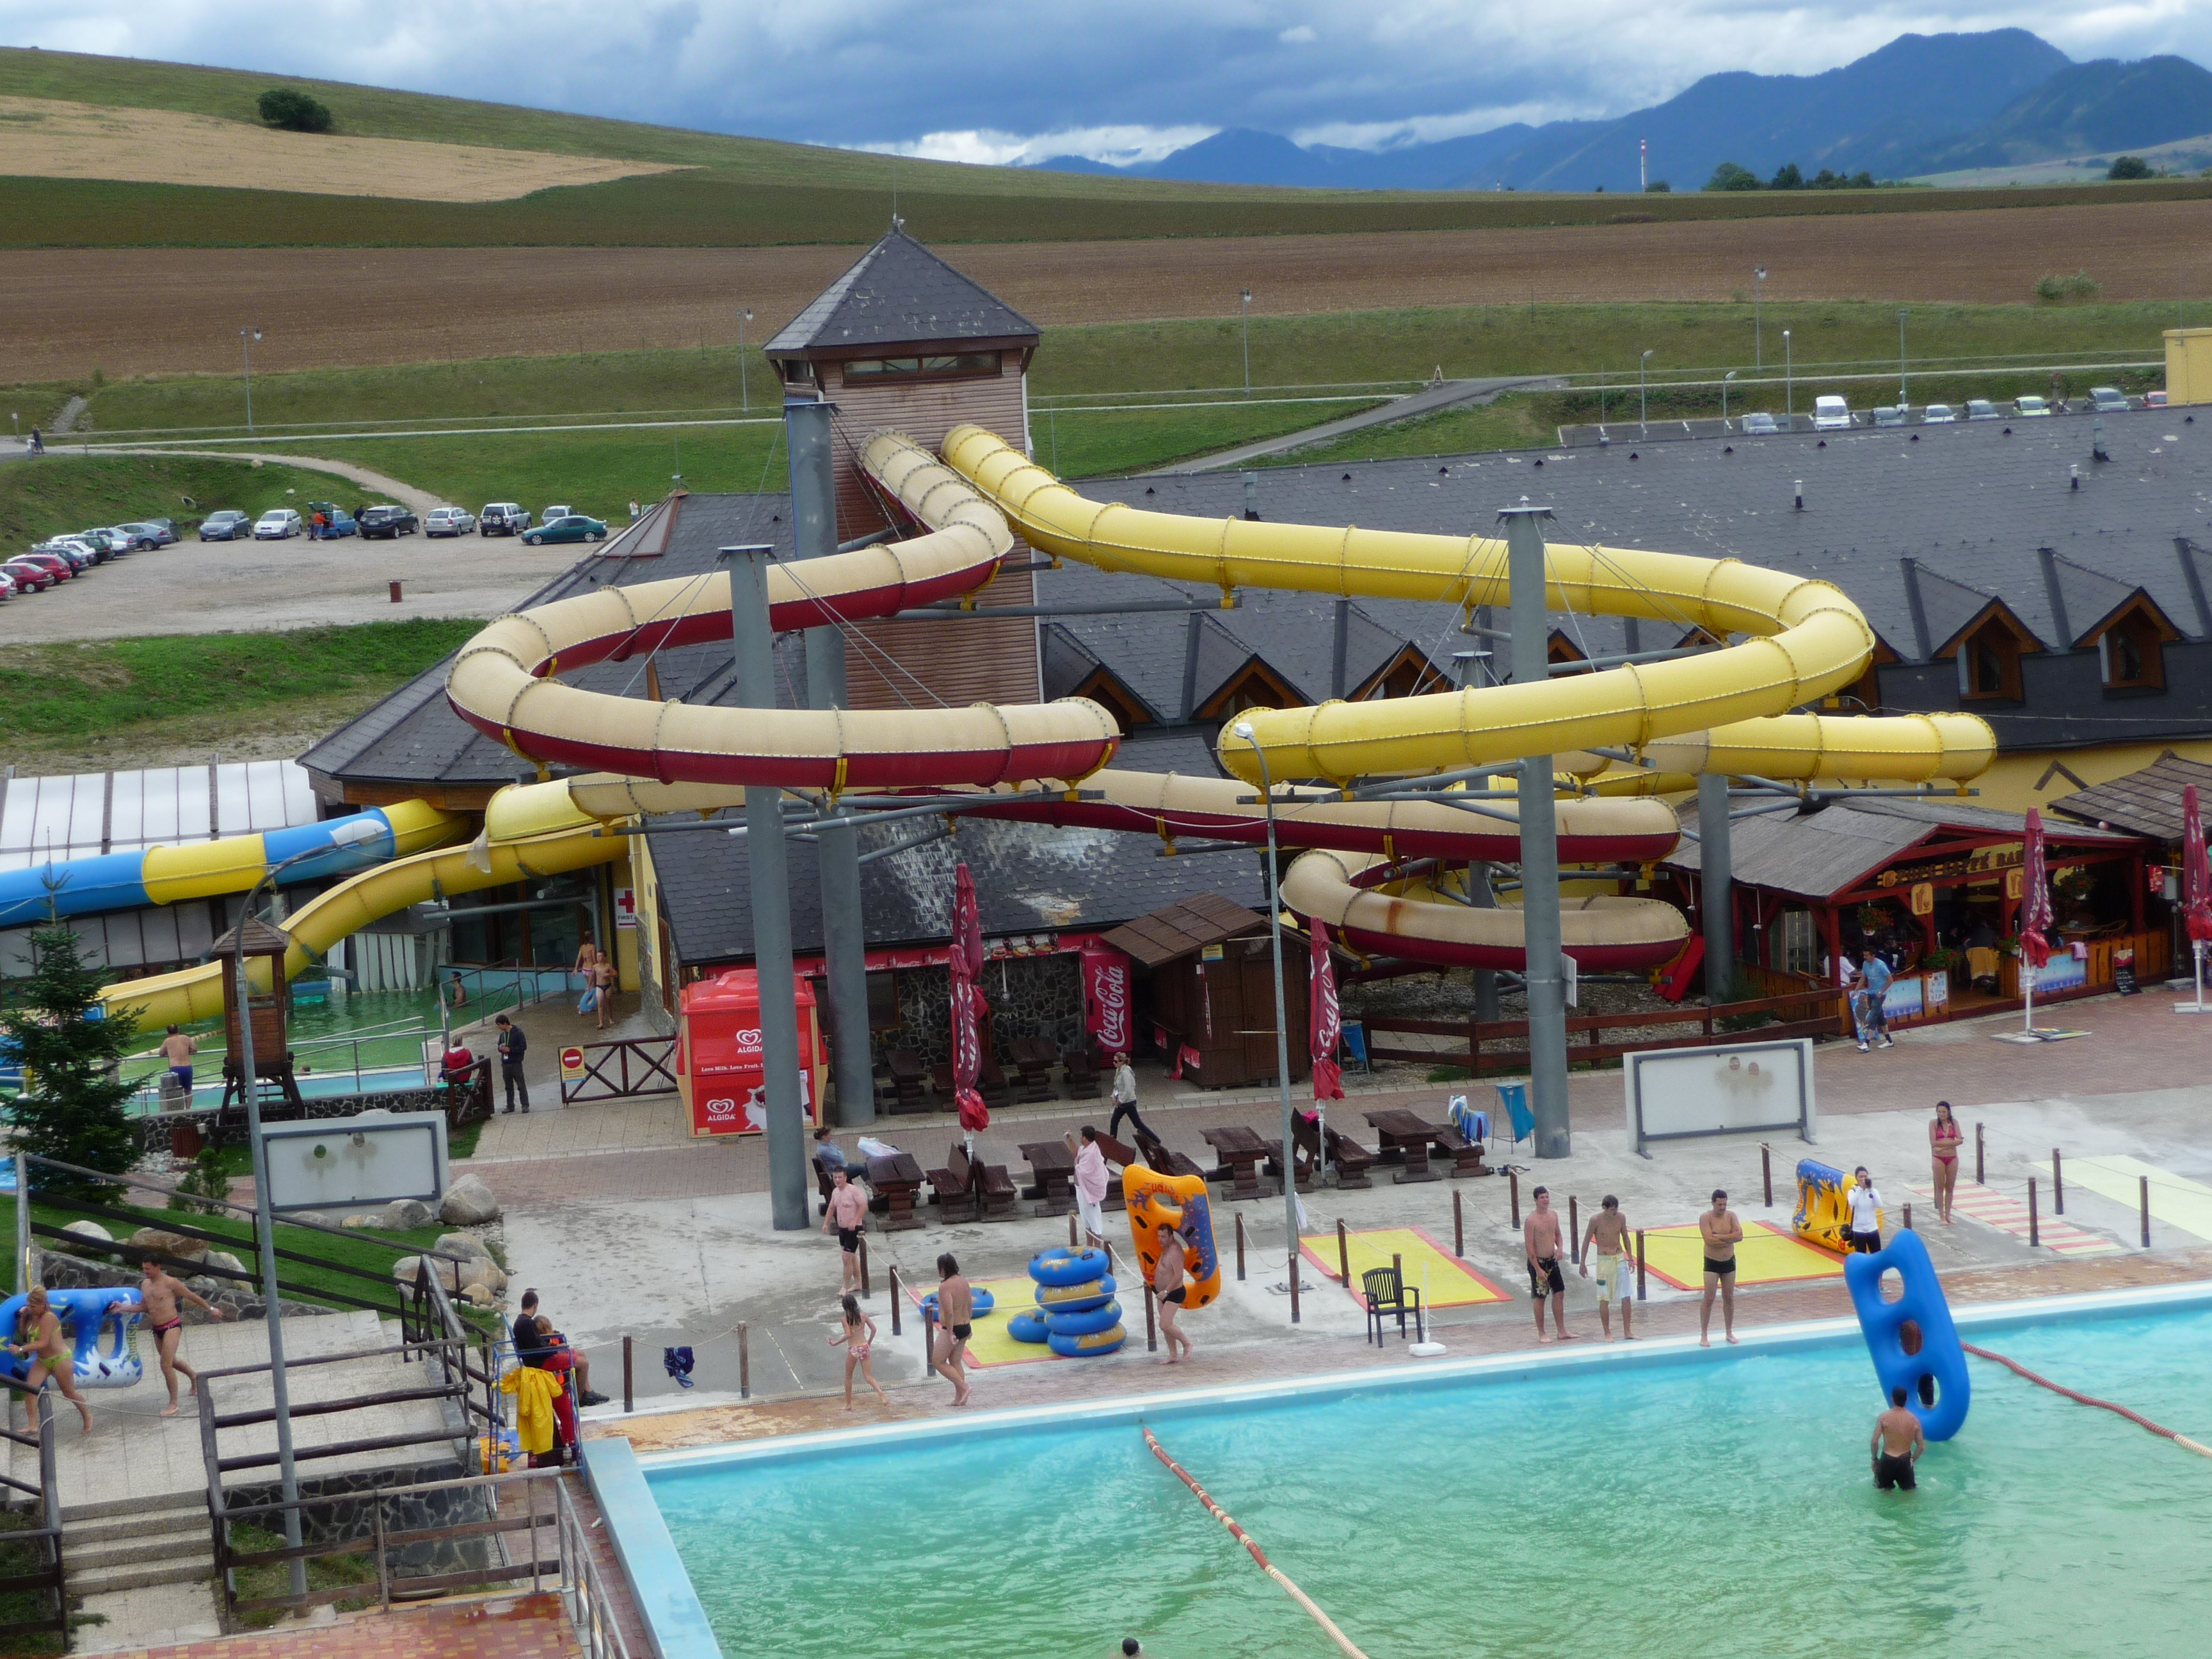 Description Aquapark Tatralandia (13).jpg: commons.wikimedia.org/wiki/File:Aquapark_Tatralandia_(13).jpg